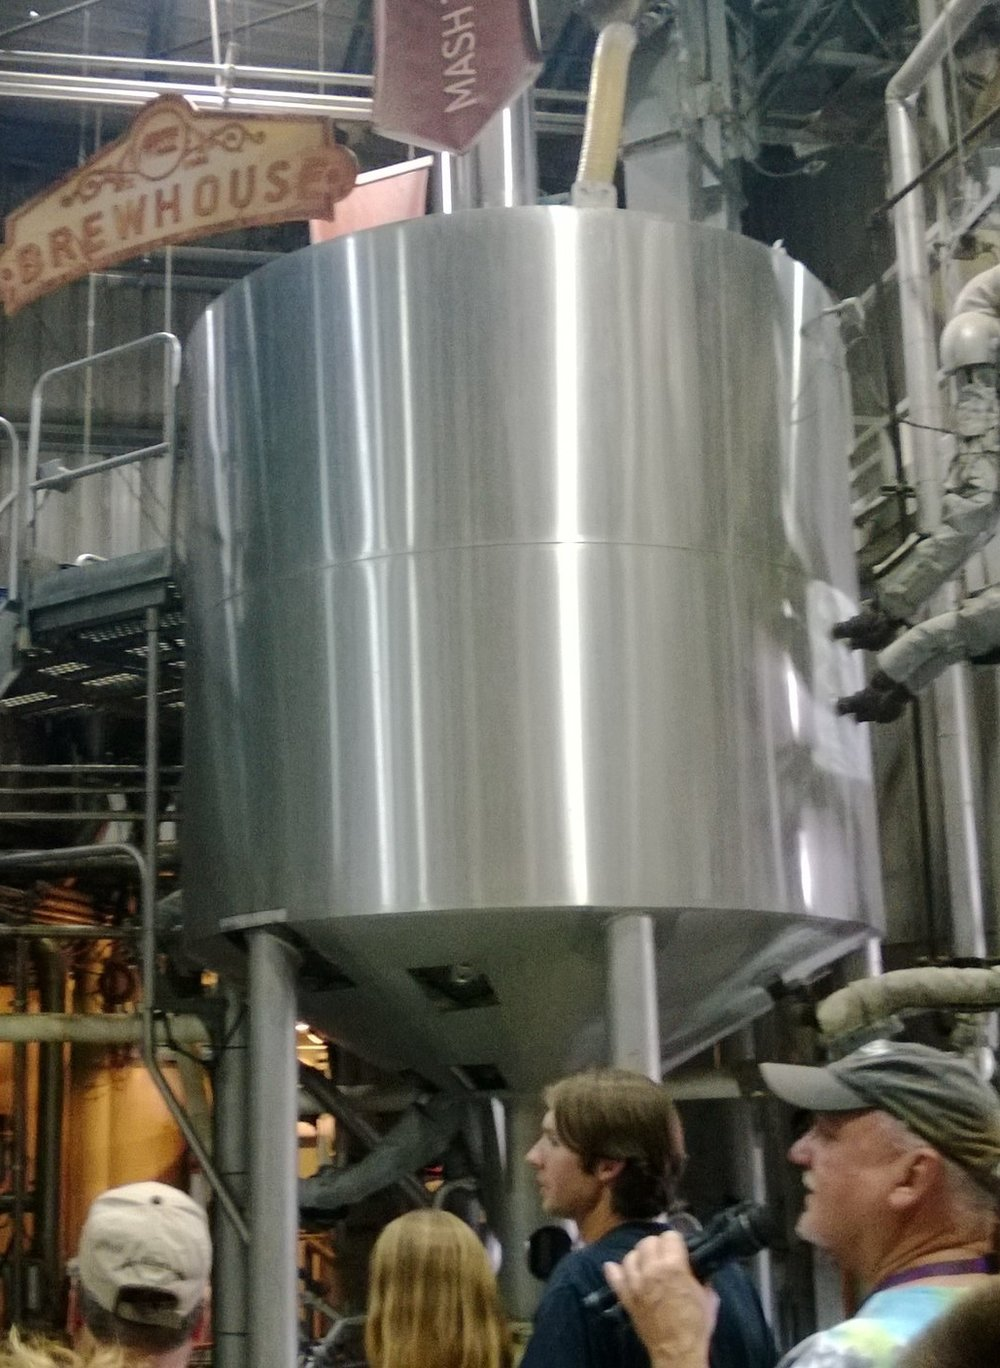 Sidebar: - Where big breweries can't adapt, they lobby. Up until about a decade ago in Texas, a brewery wasn't allowed to sell beer at a facility they owned unless there was a